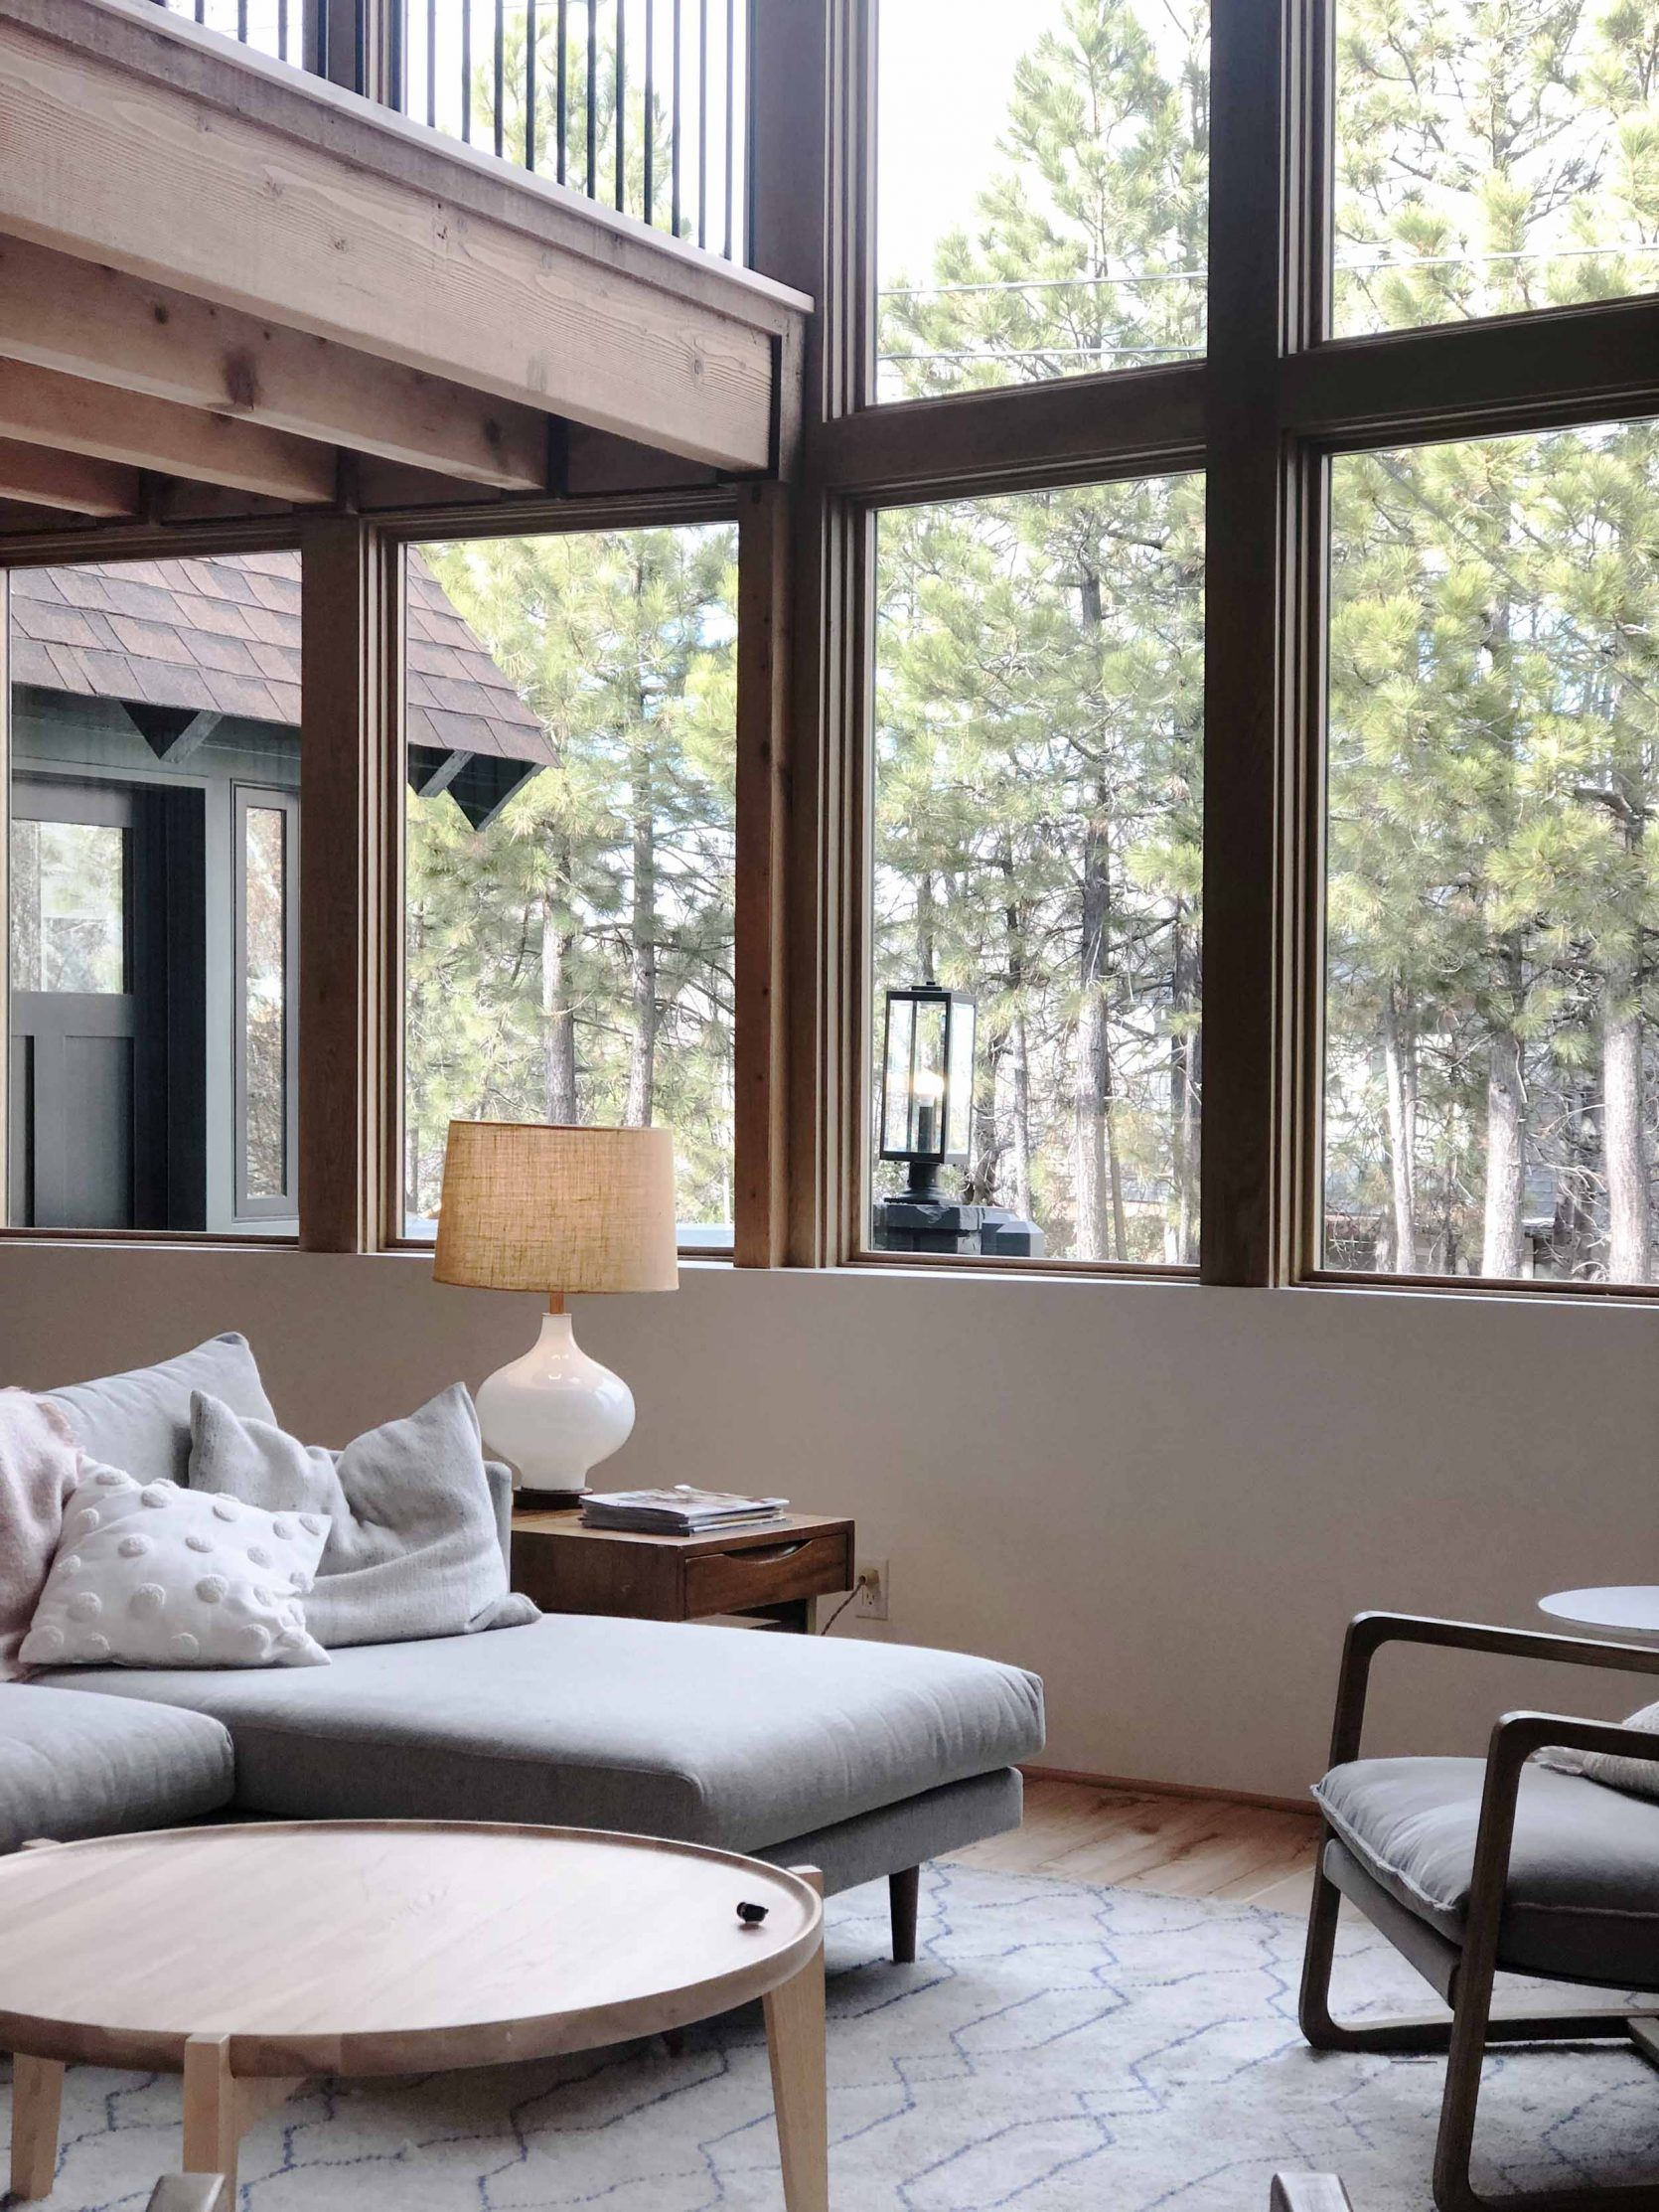 Mesmerizing Window Design For Small House To Be Inspired By: My Actual Design Process For Decorating A House (From A Designer)